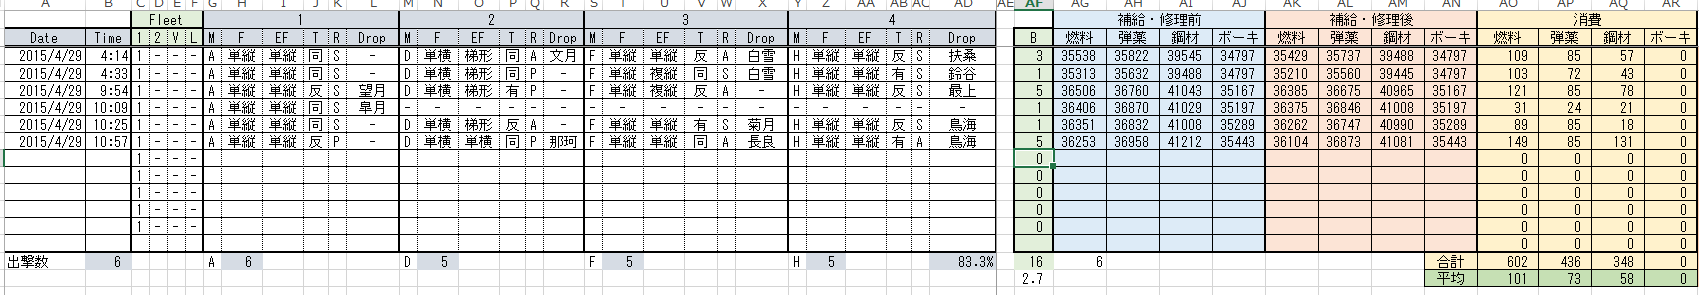 20150429_E-1_Result.PNG